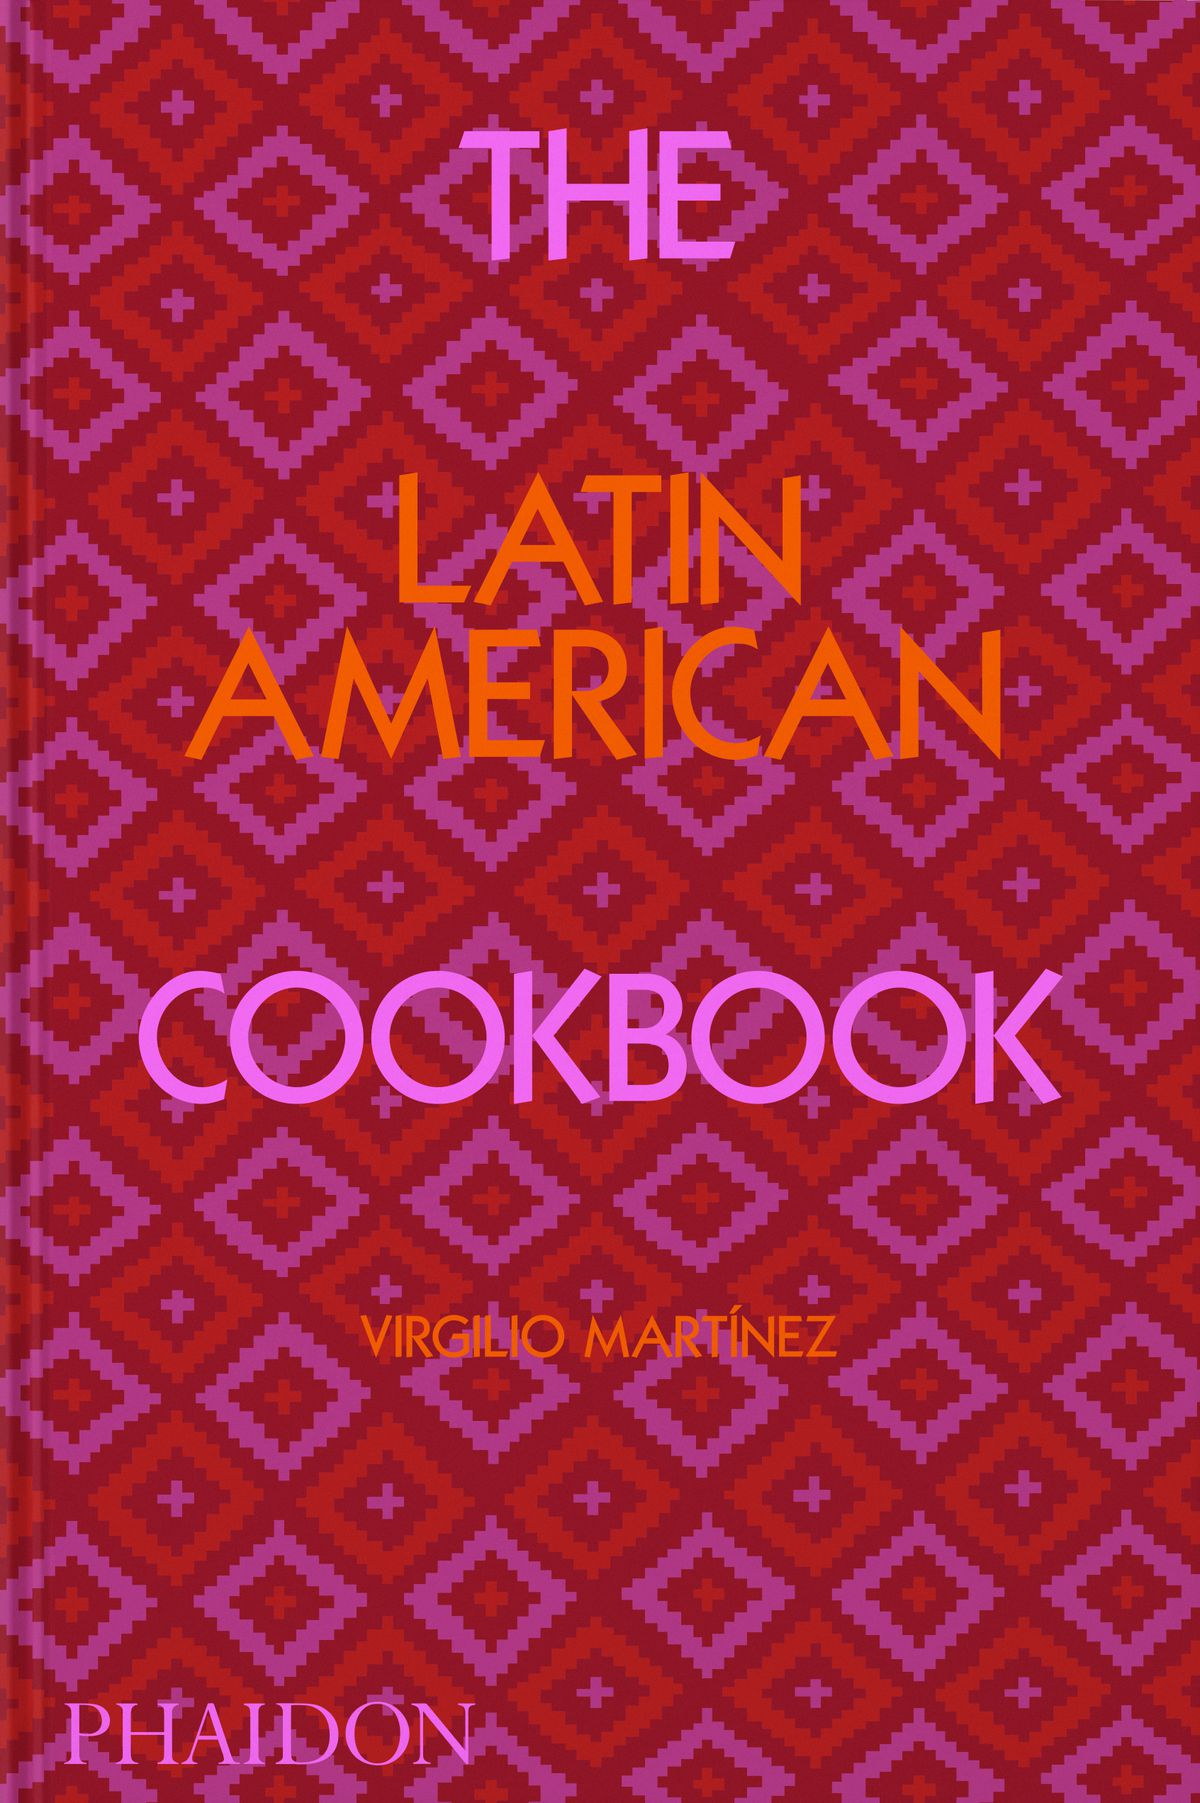 """An abstract cookbook cover with a red and pink pattern and the words """"The Latin American Cookbook"""""""